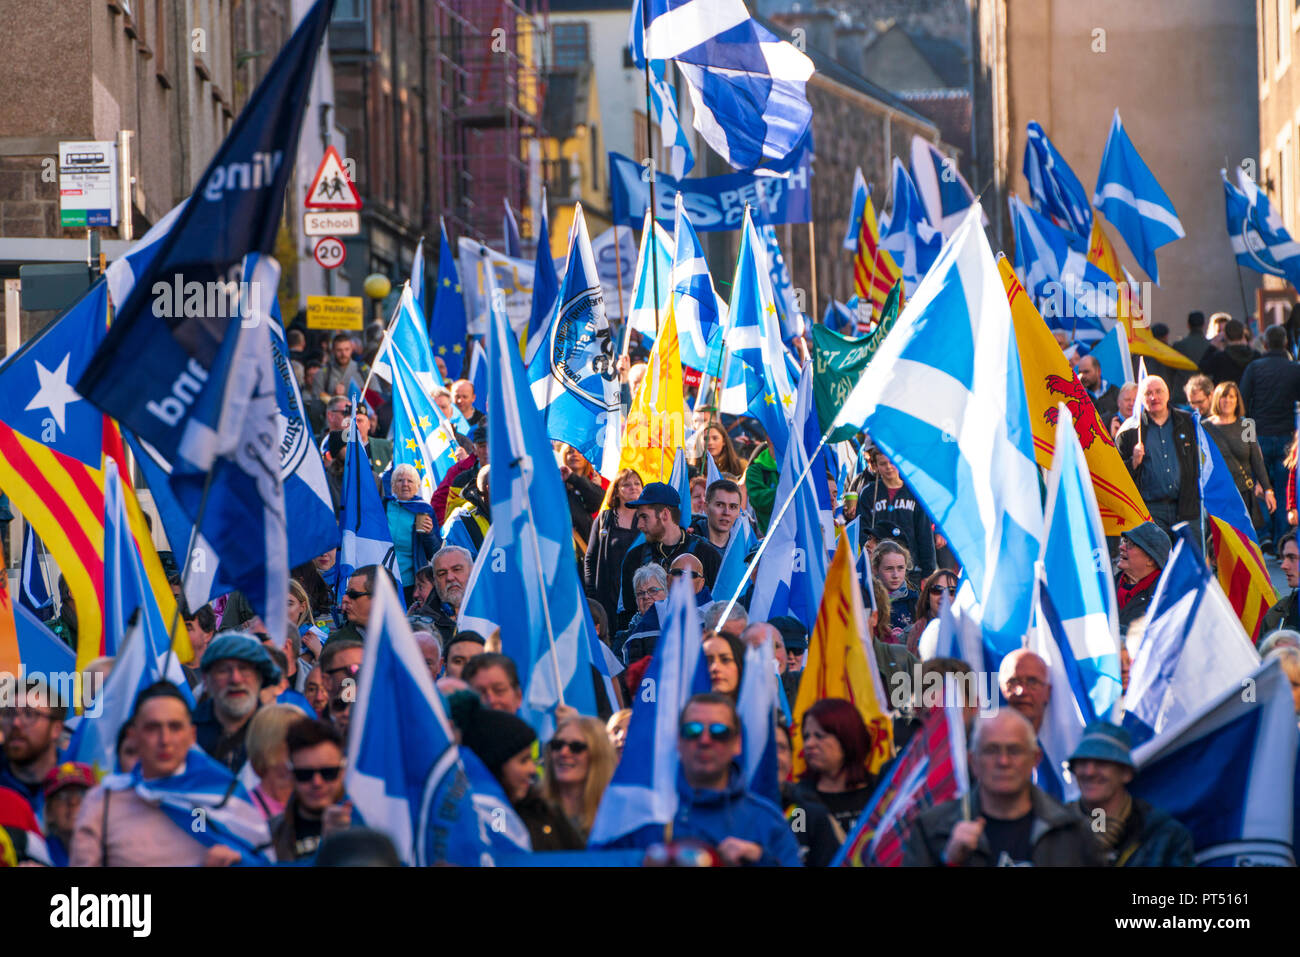 Edinburgh, Scotland, United Kingdom, 7th October 2018. All Under One Banner (AUOB) Scottish March and Rally for Independence. Pro- Scottish independence  supporters walking from Edinburgh Castle to the Scottish Parliament at Holyrood. AOUB is a pro-independence organisation. Credit: Iain Masterton/Alamy Live News - Stock Image